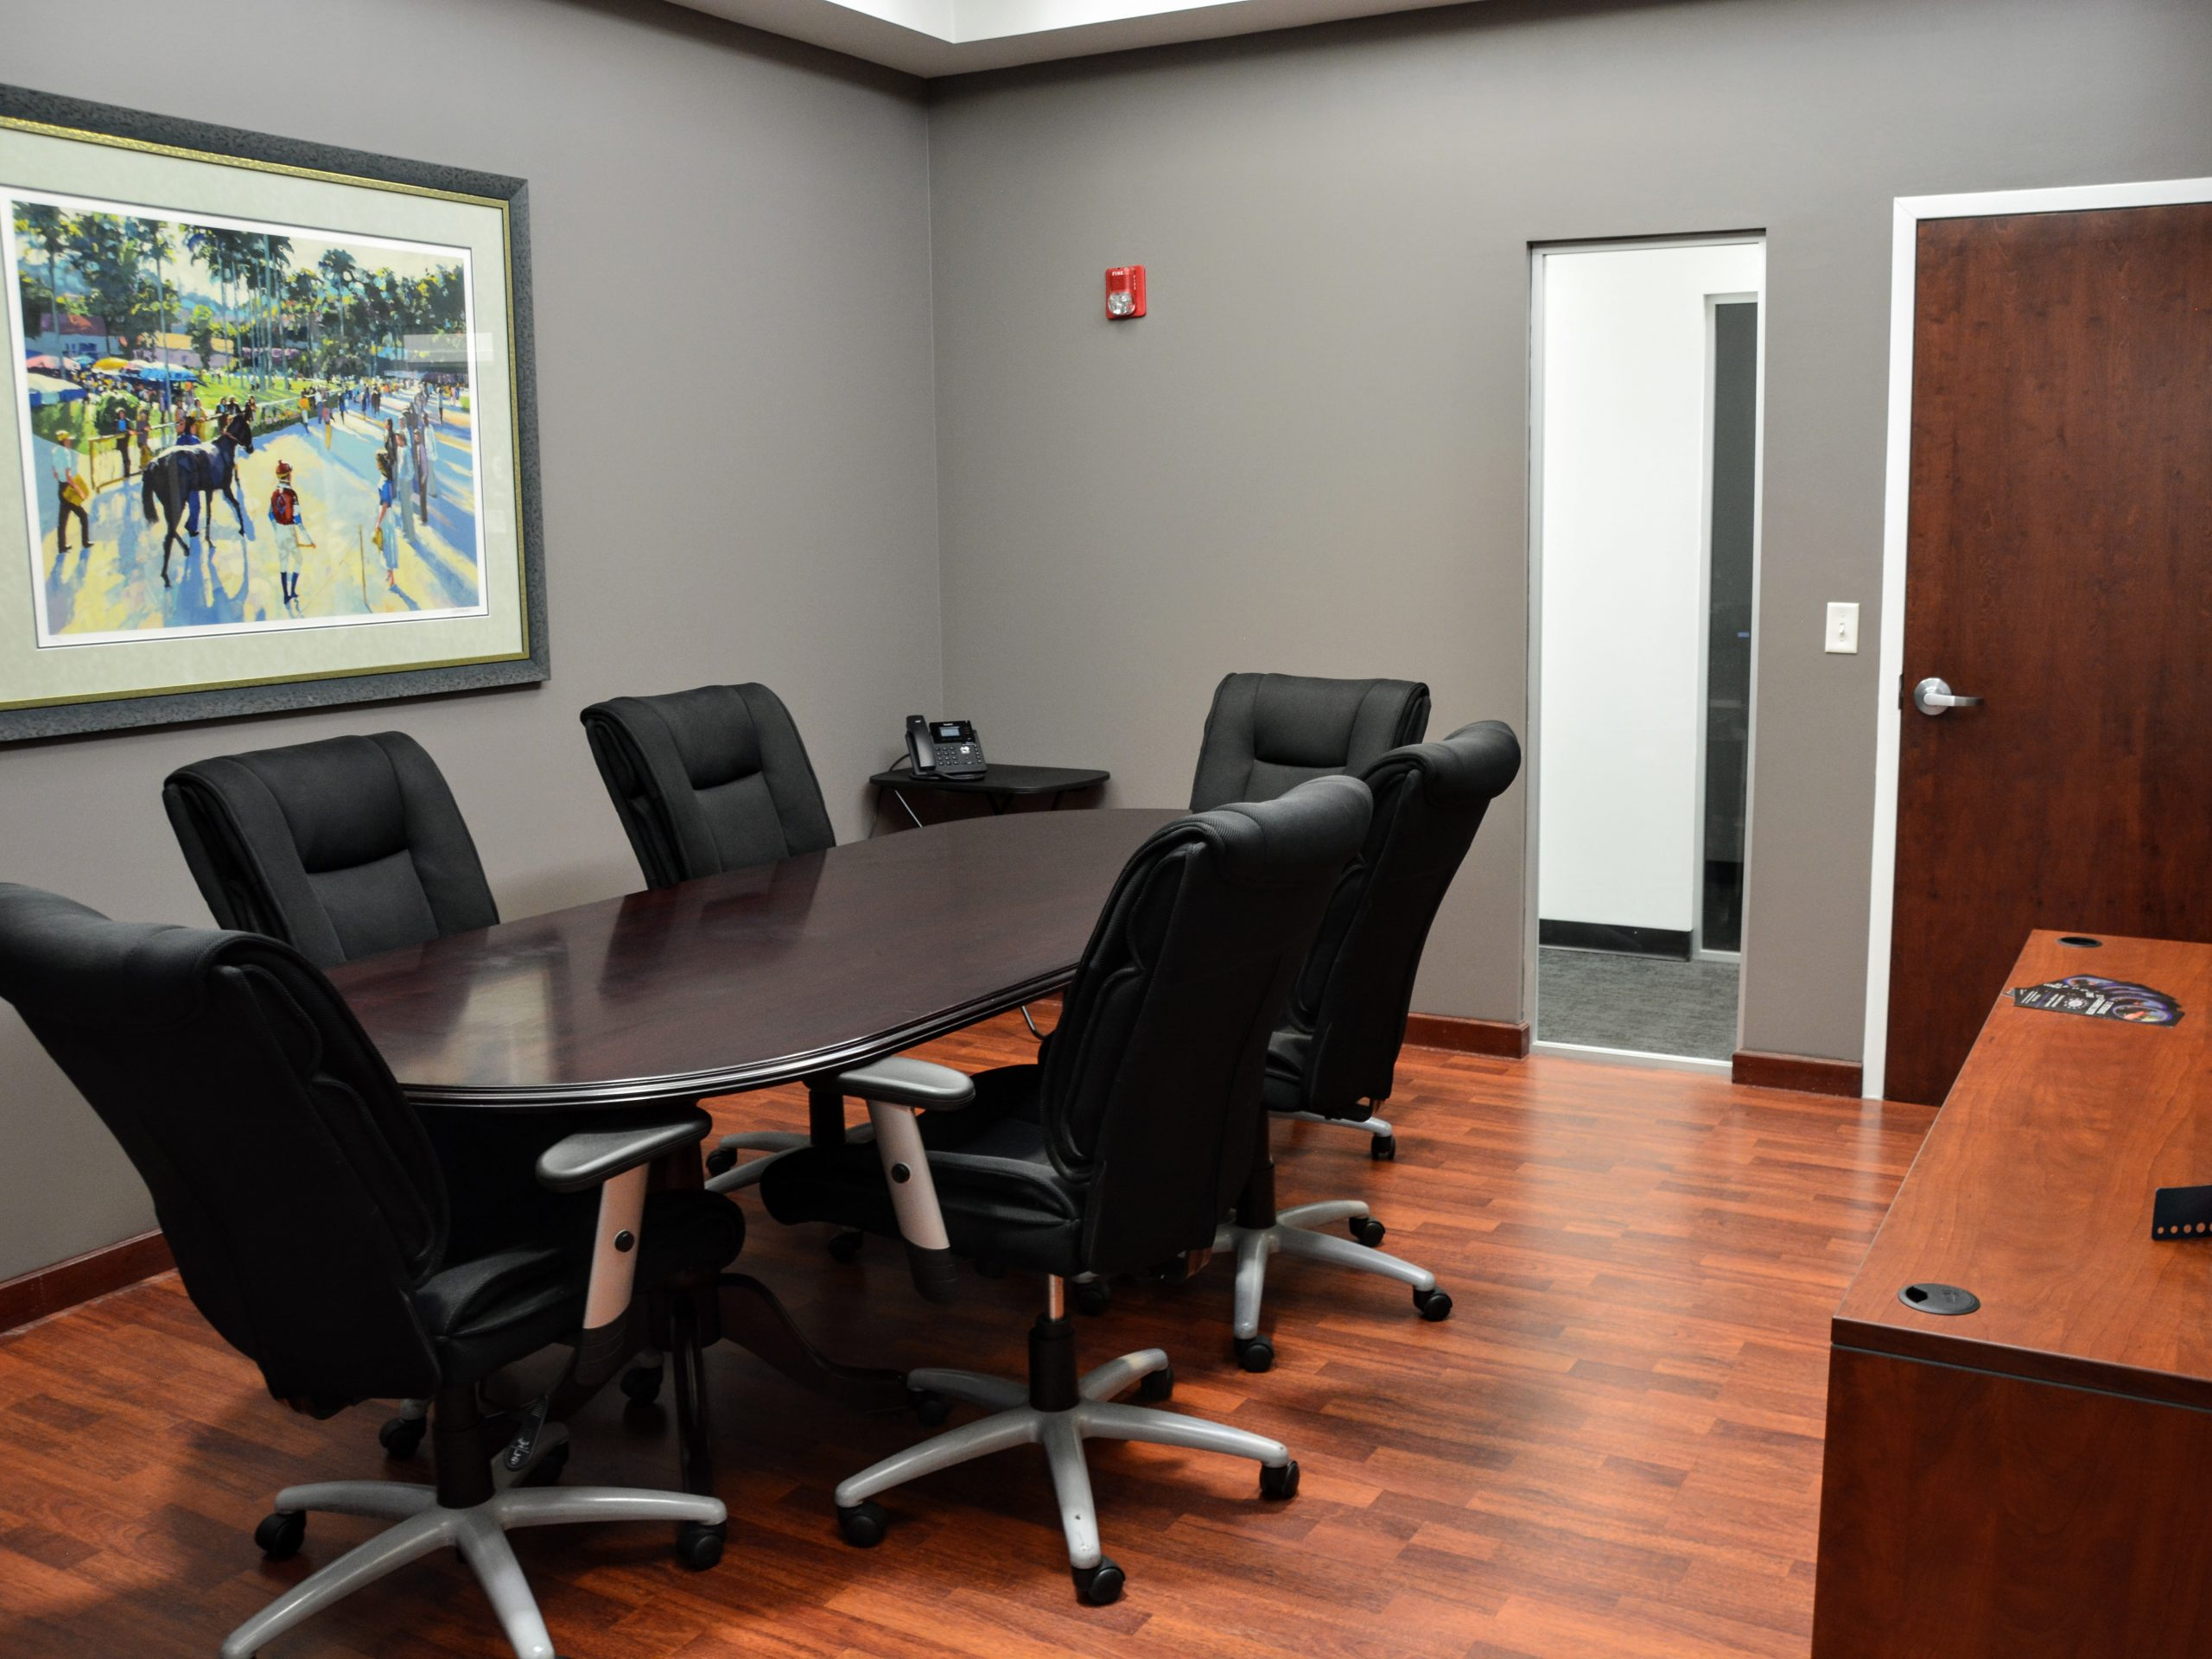 Conference room for attorneys and legal proceedings